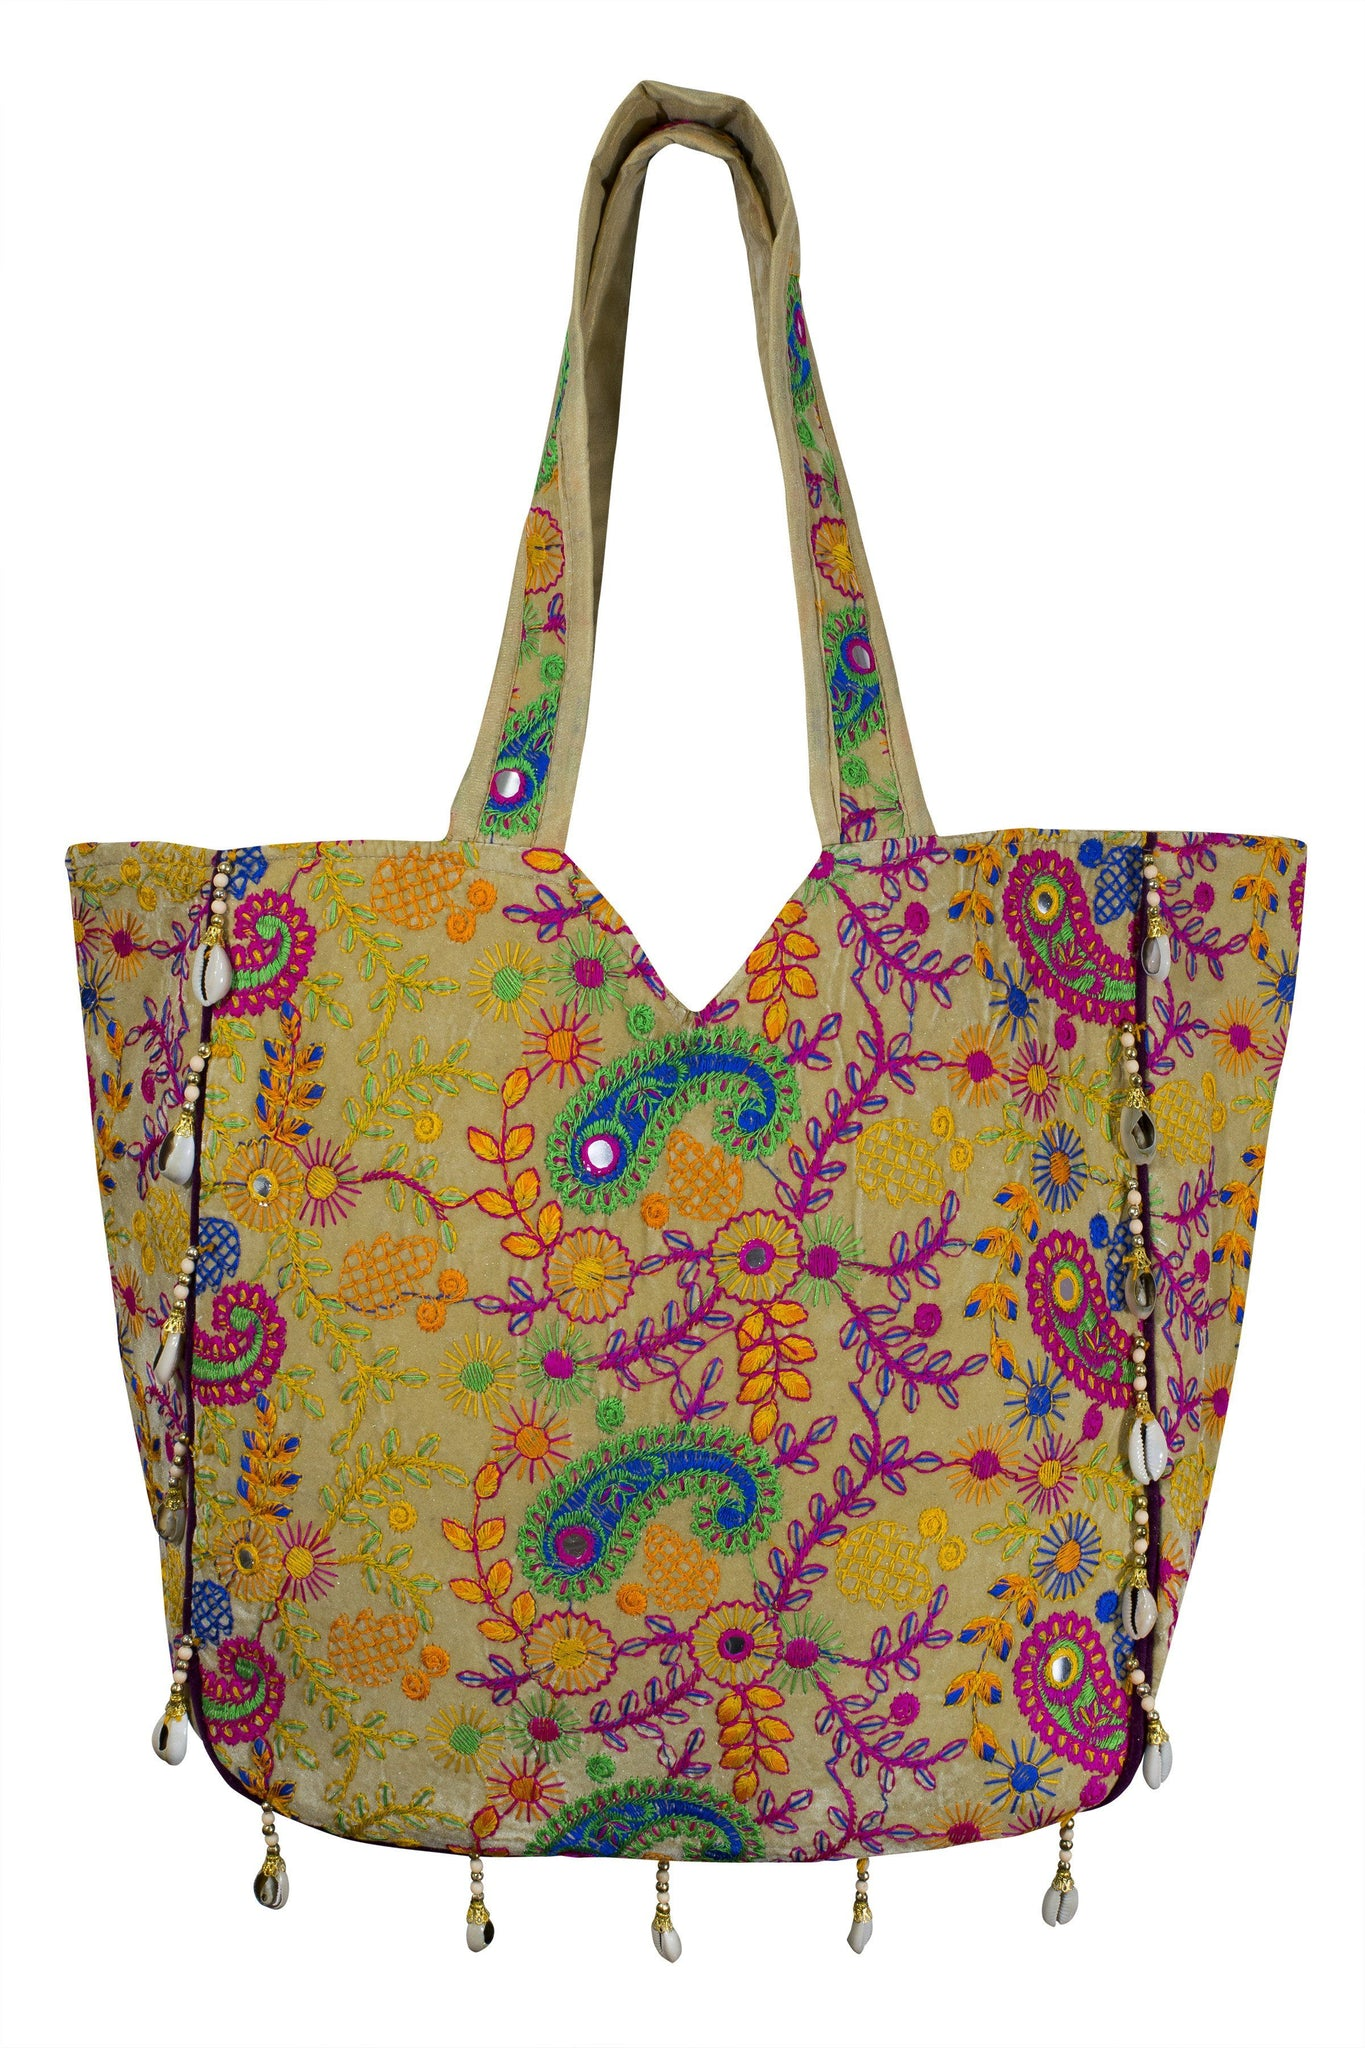 Ethnic Indian style Embroidered Bag Shoulder Strap Paisley - CCCollections